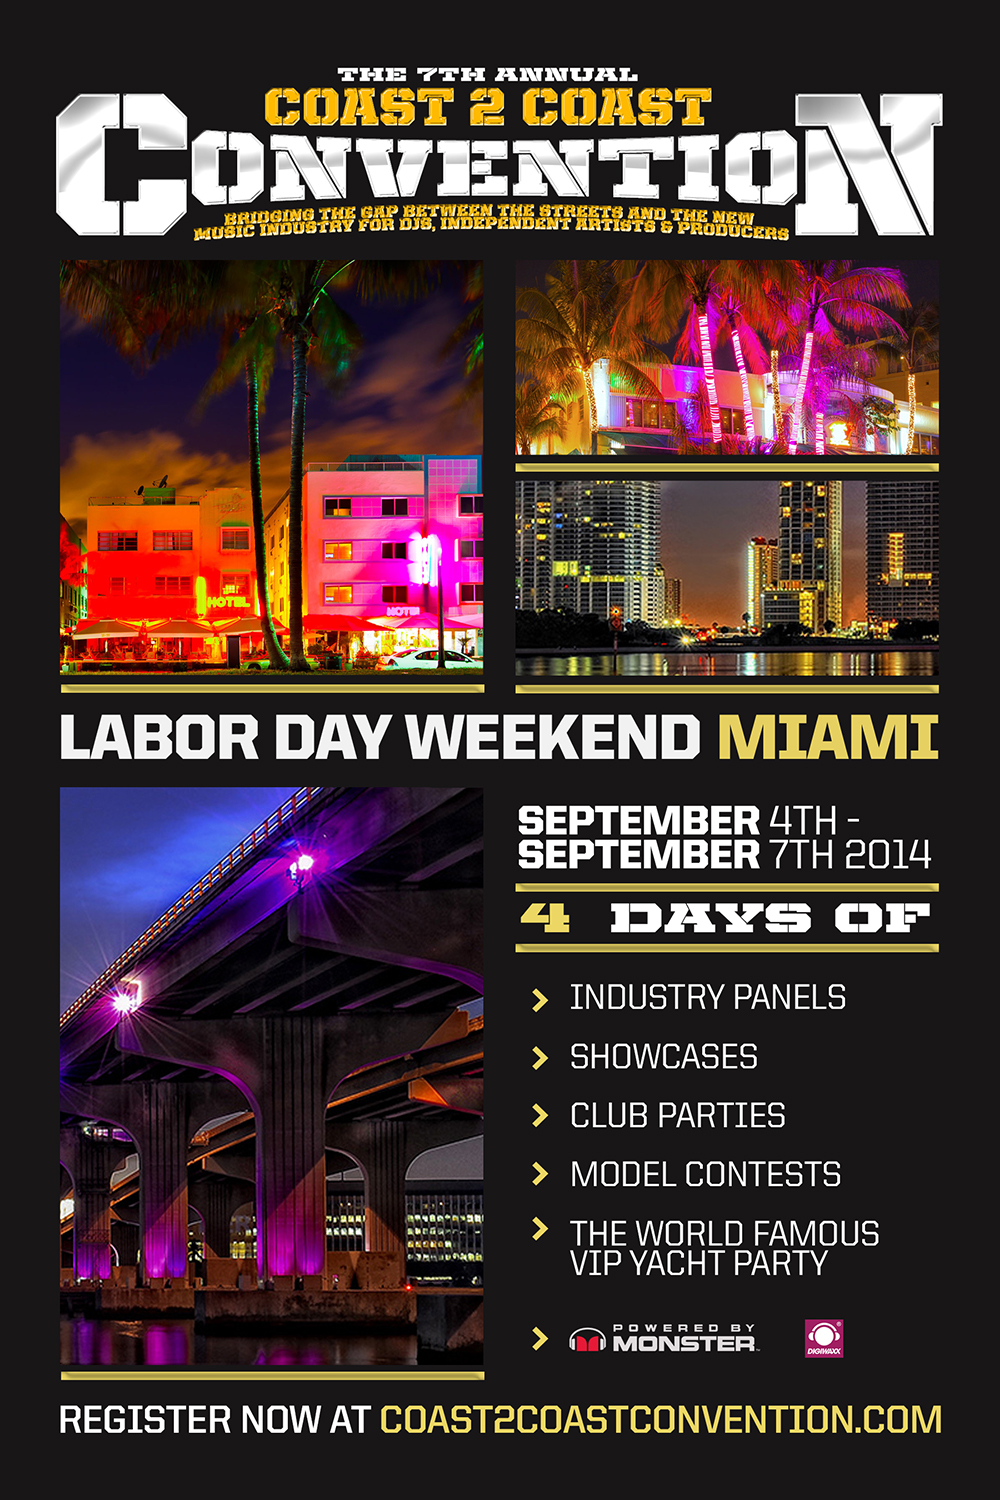 PRESS RELEASE:  7th Annual Coast 2 Coast Music Convention Invades Miami, FL Labor Day Weekend